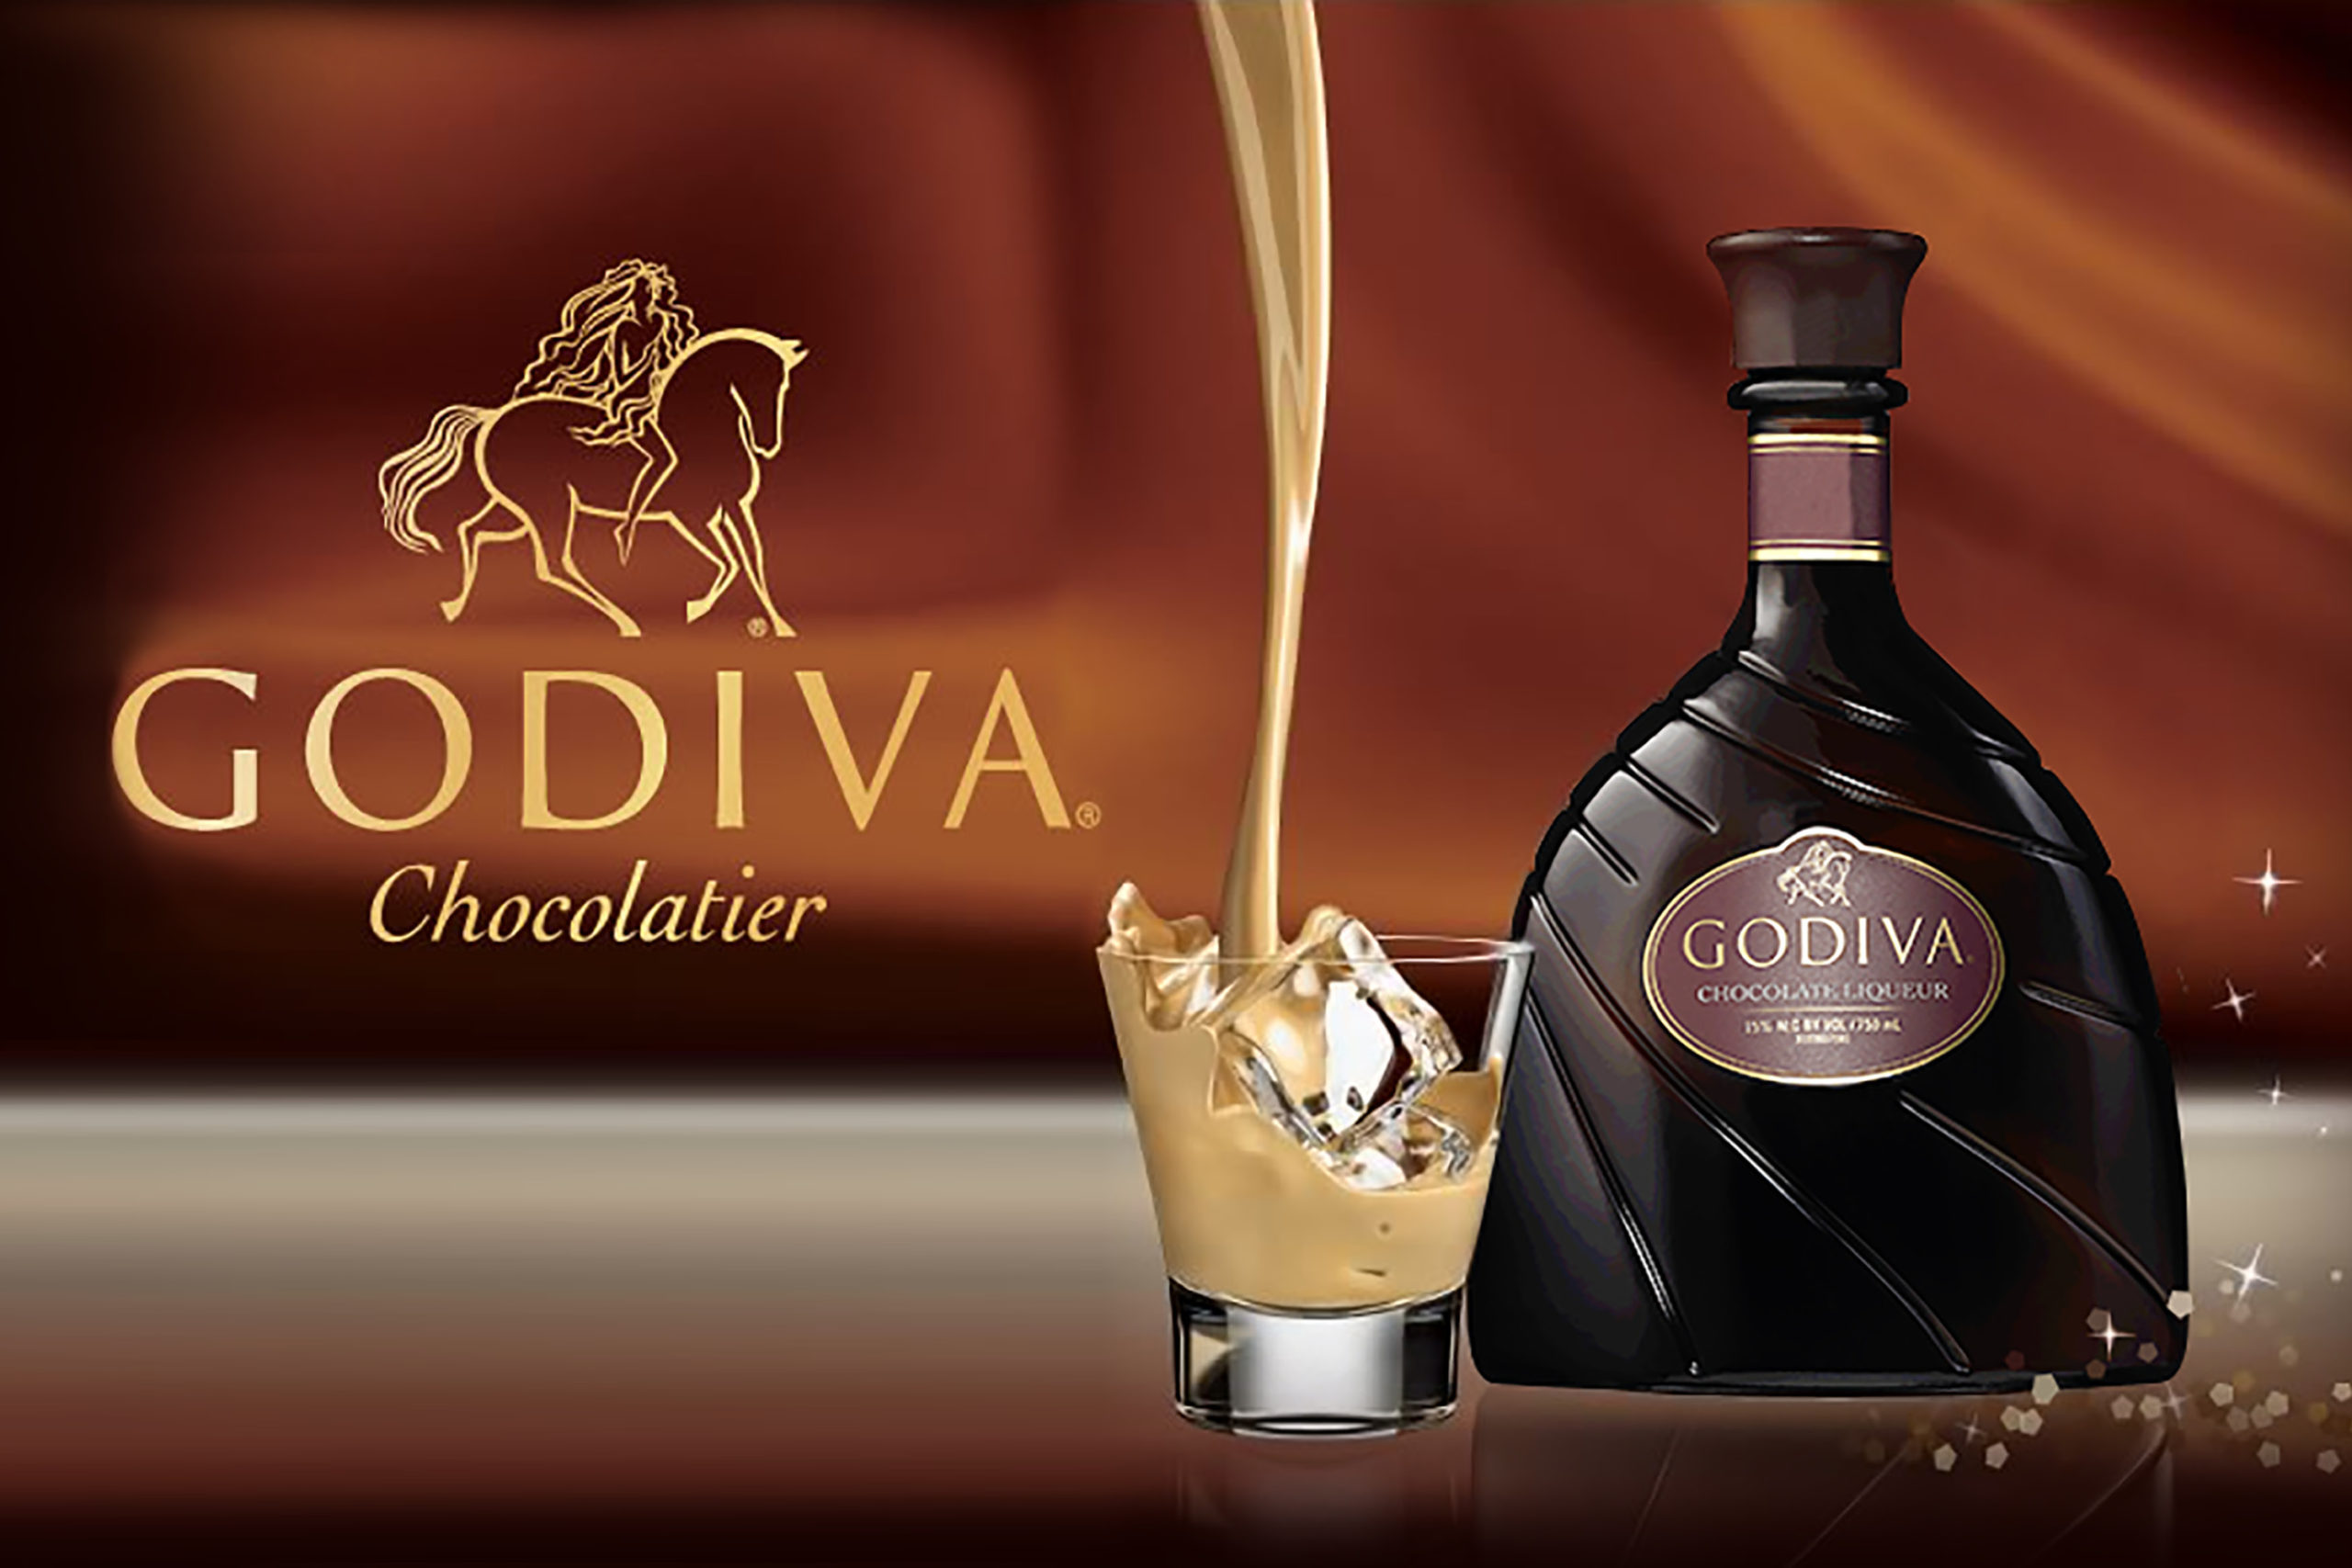 https://www.milkbar.jp/wp/wp-content/uploads/2020/08/drink_godiva-scaled.jpg